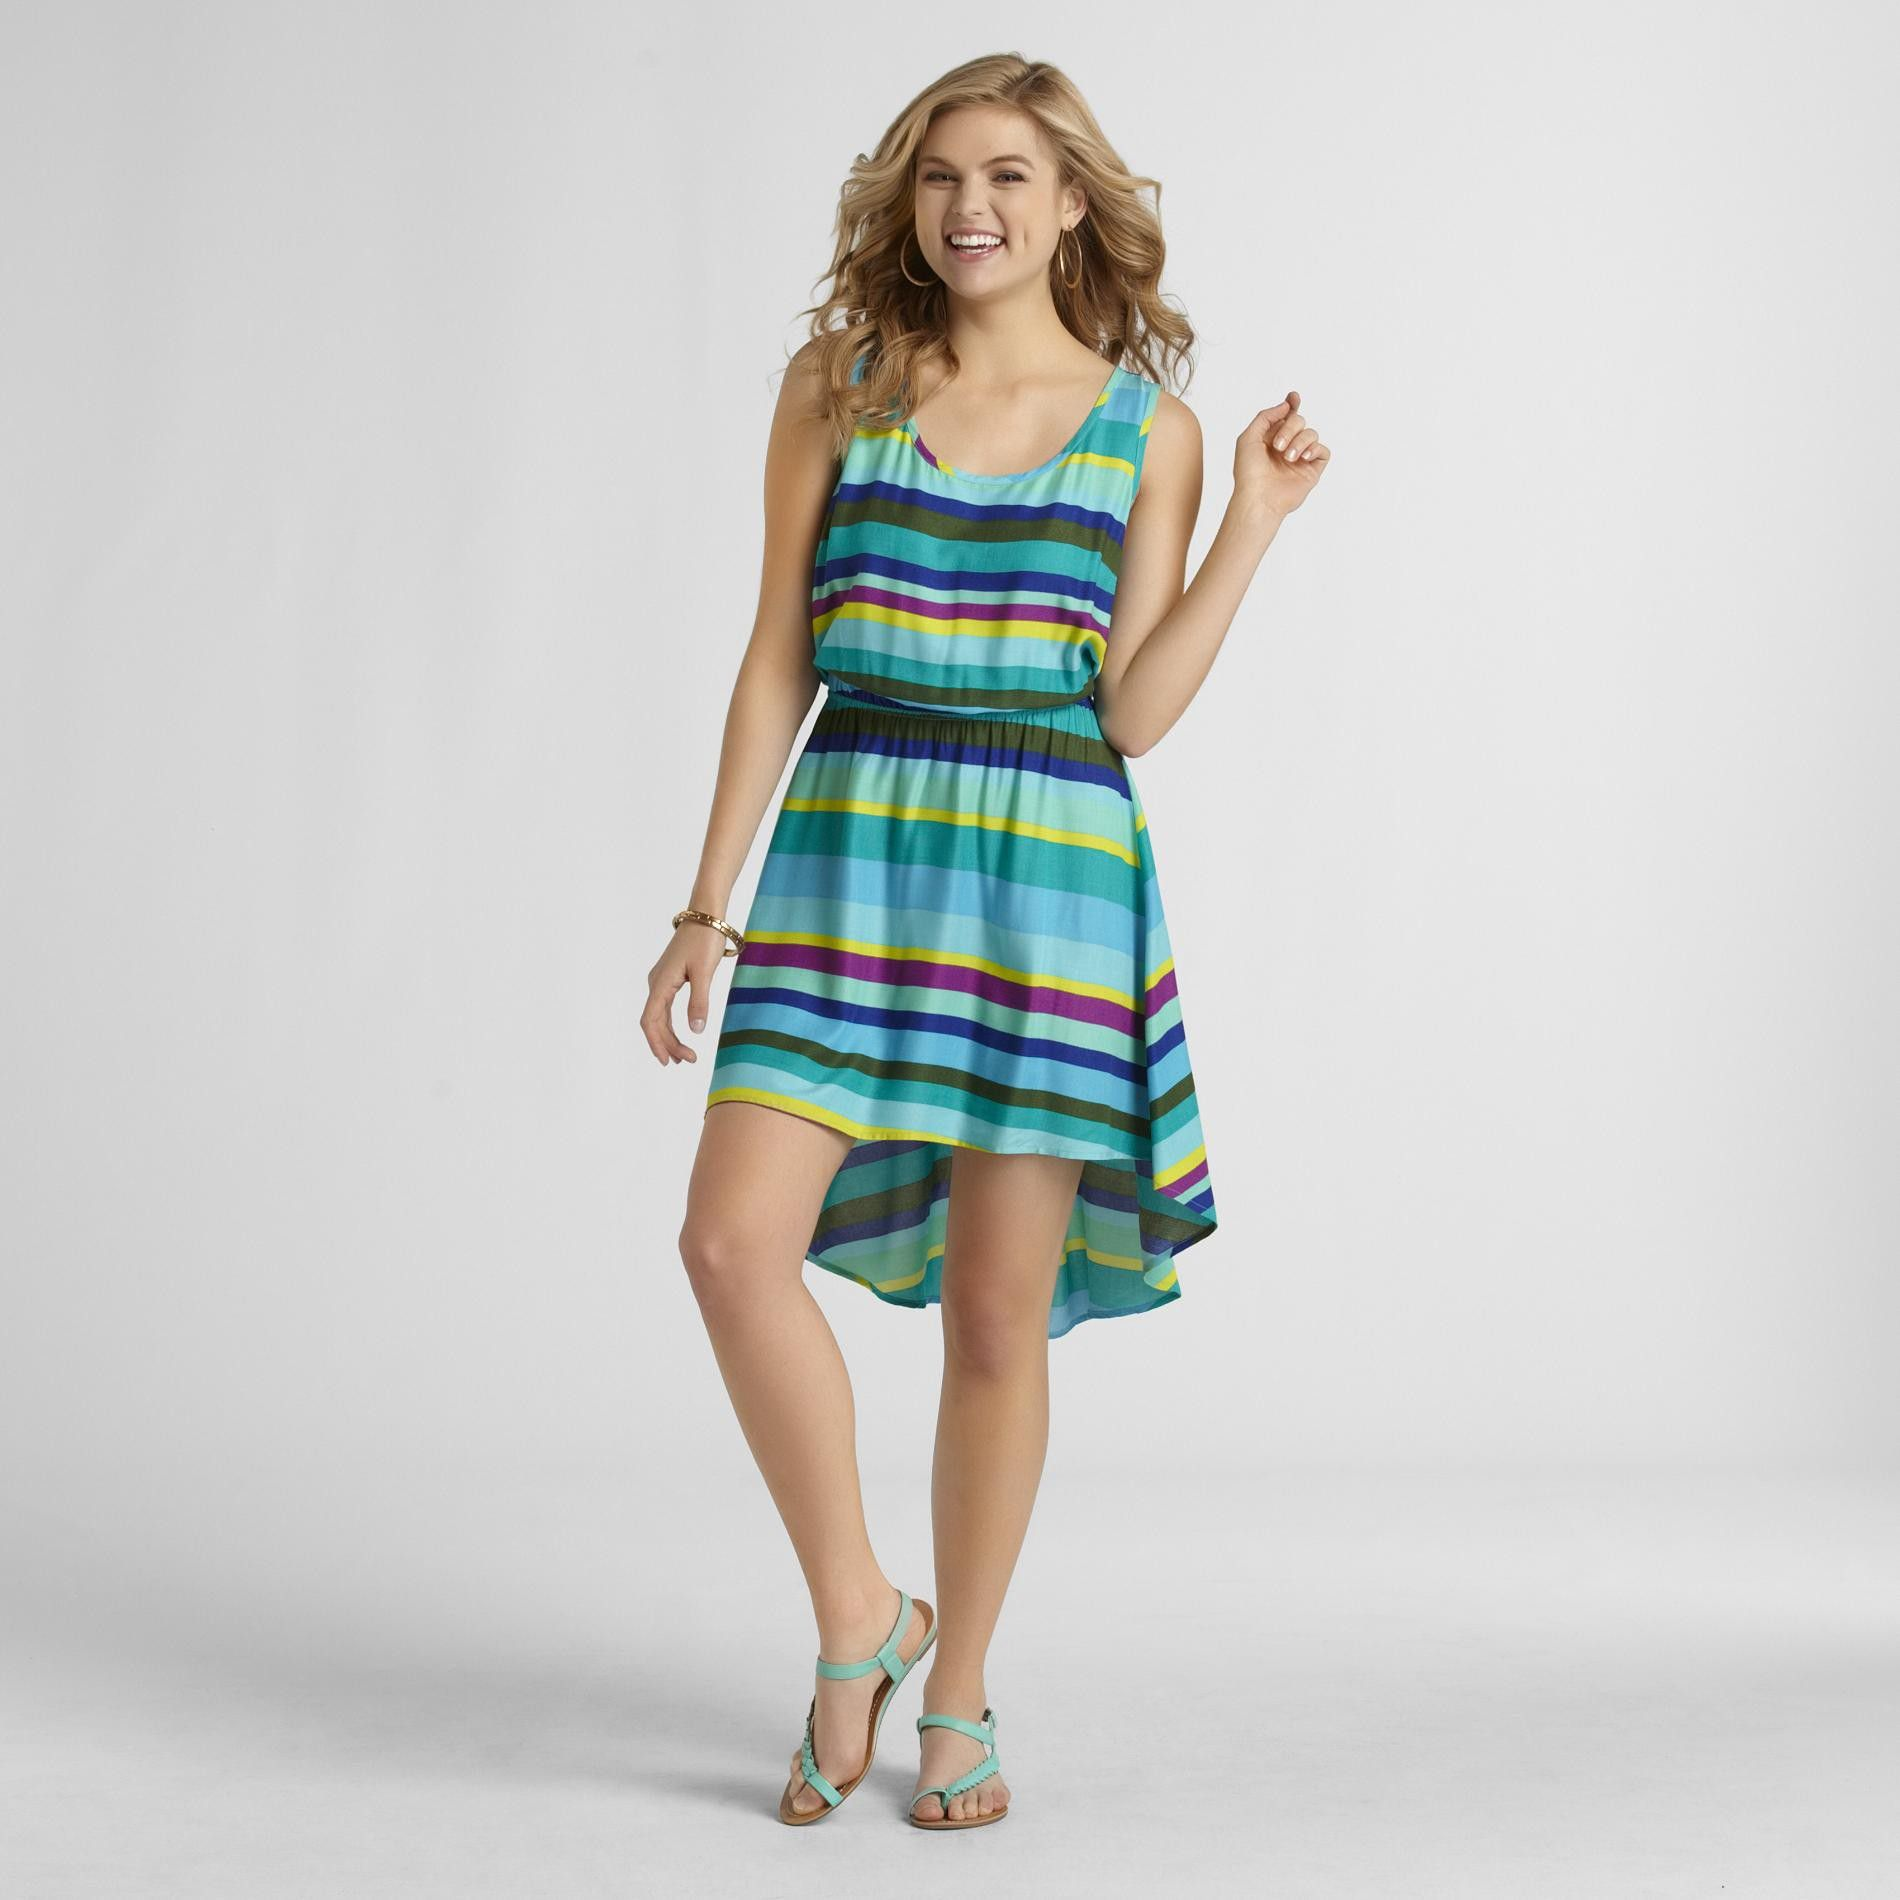 Metaphor Women's Sleeveless High-Low Dress - Striped at Sears.com